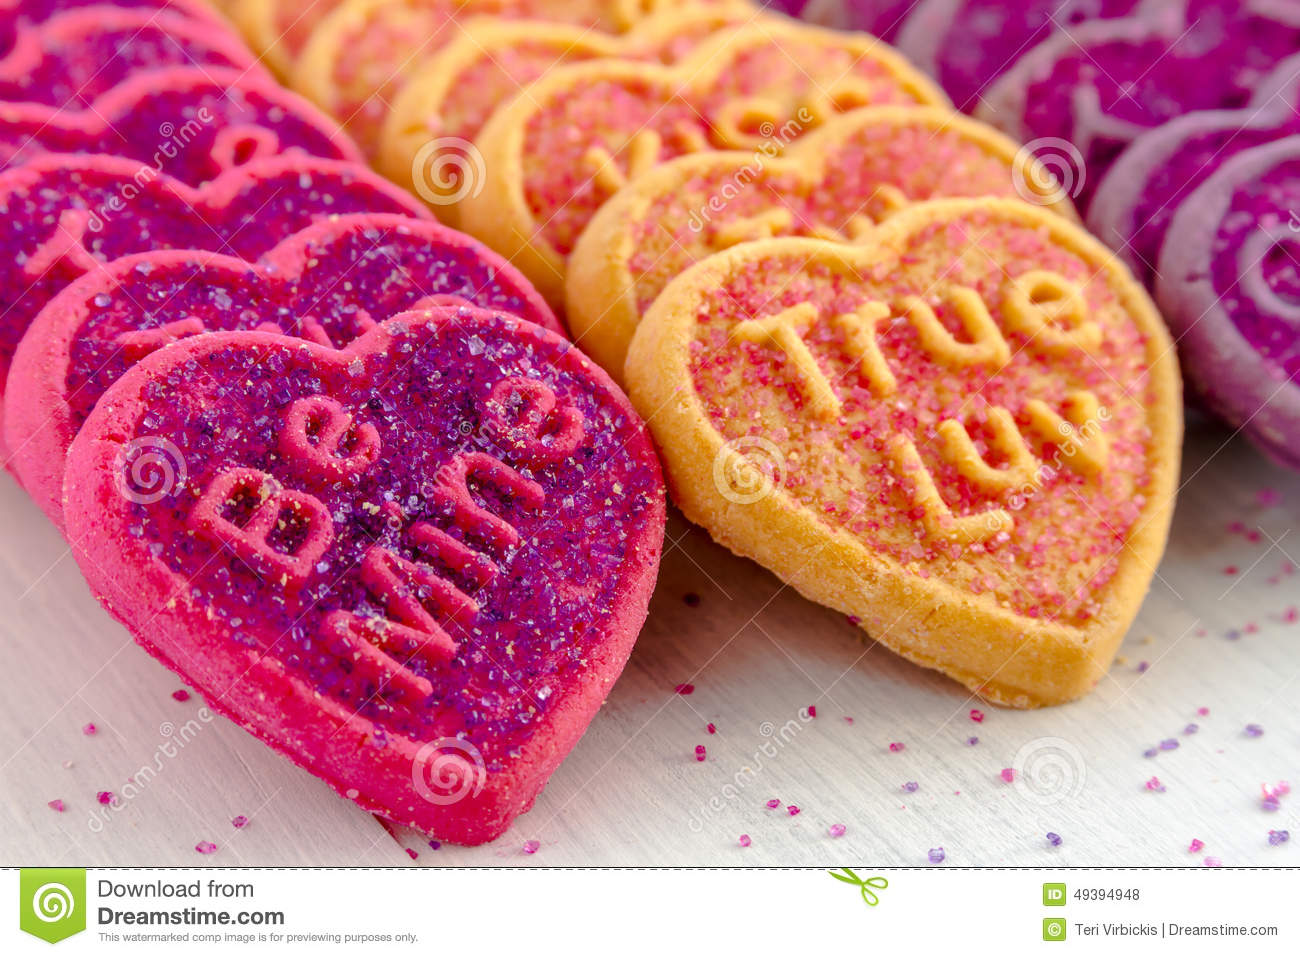 Valentines Day Heart Candy And Cookies Stock Photo Image Of Purple